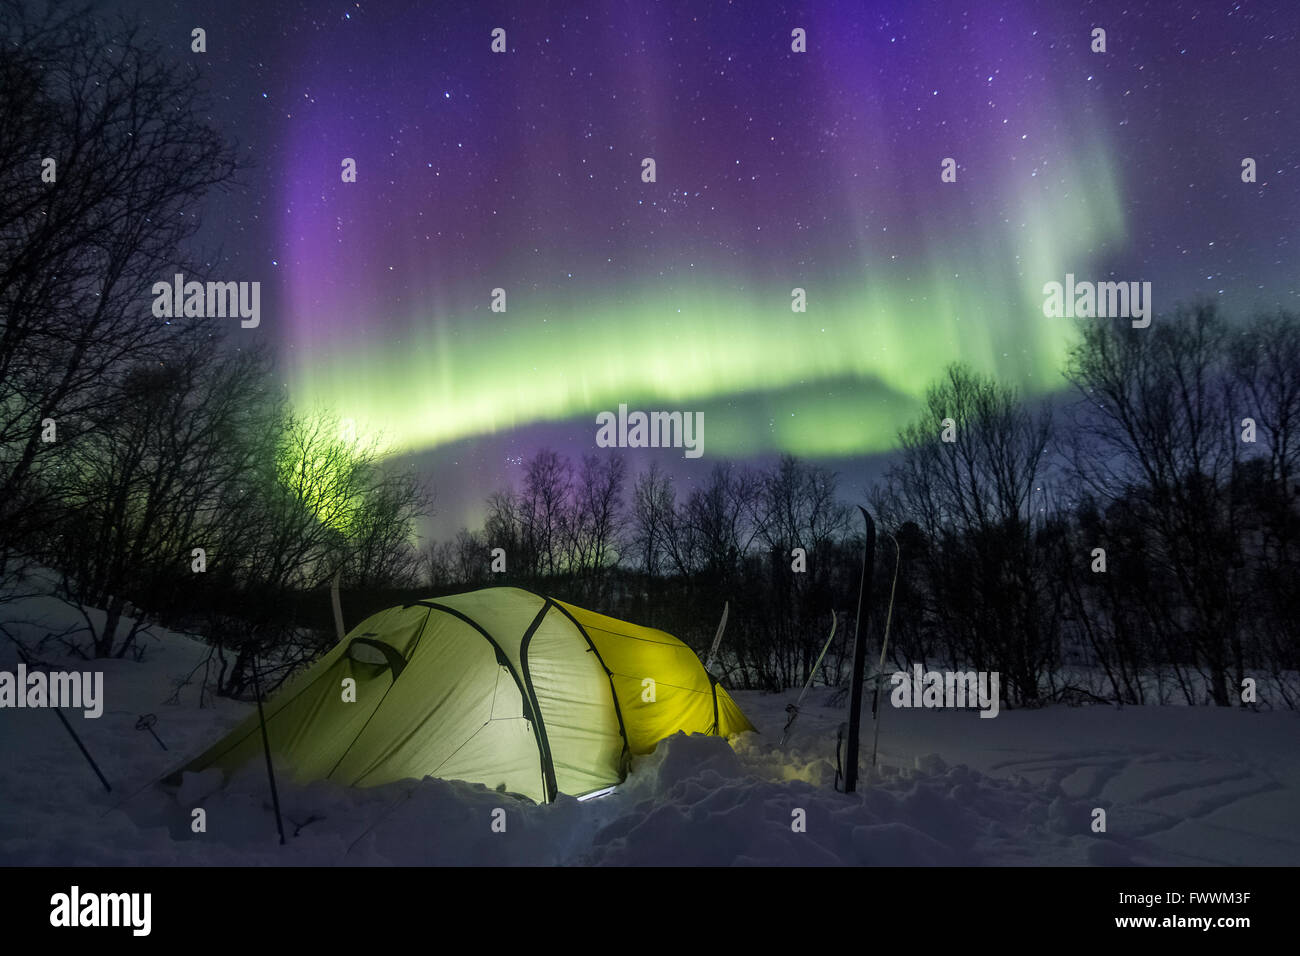 Les Aurora sous tentes Photo Stock